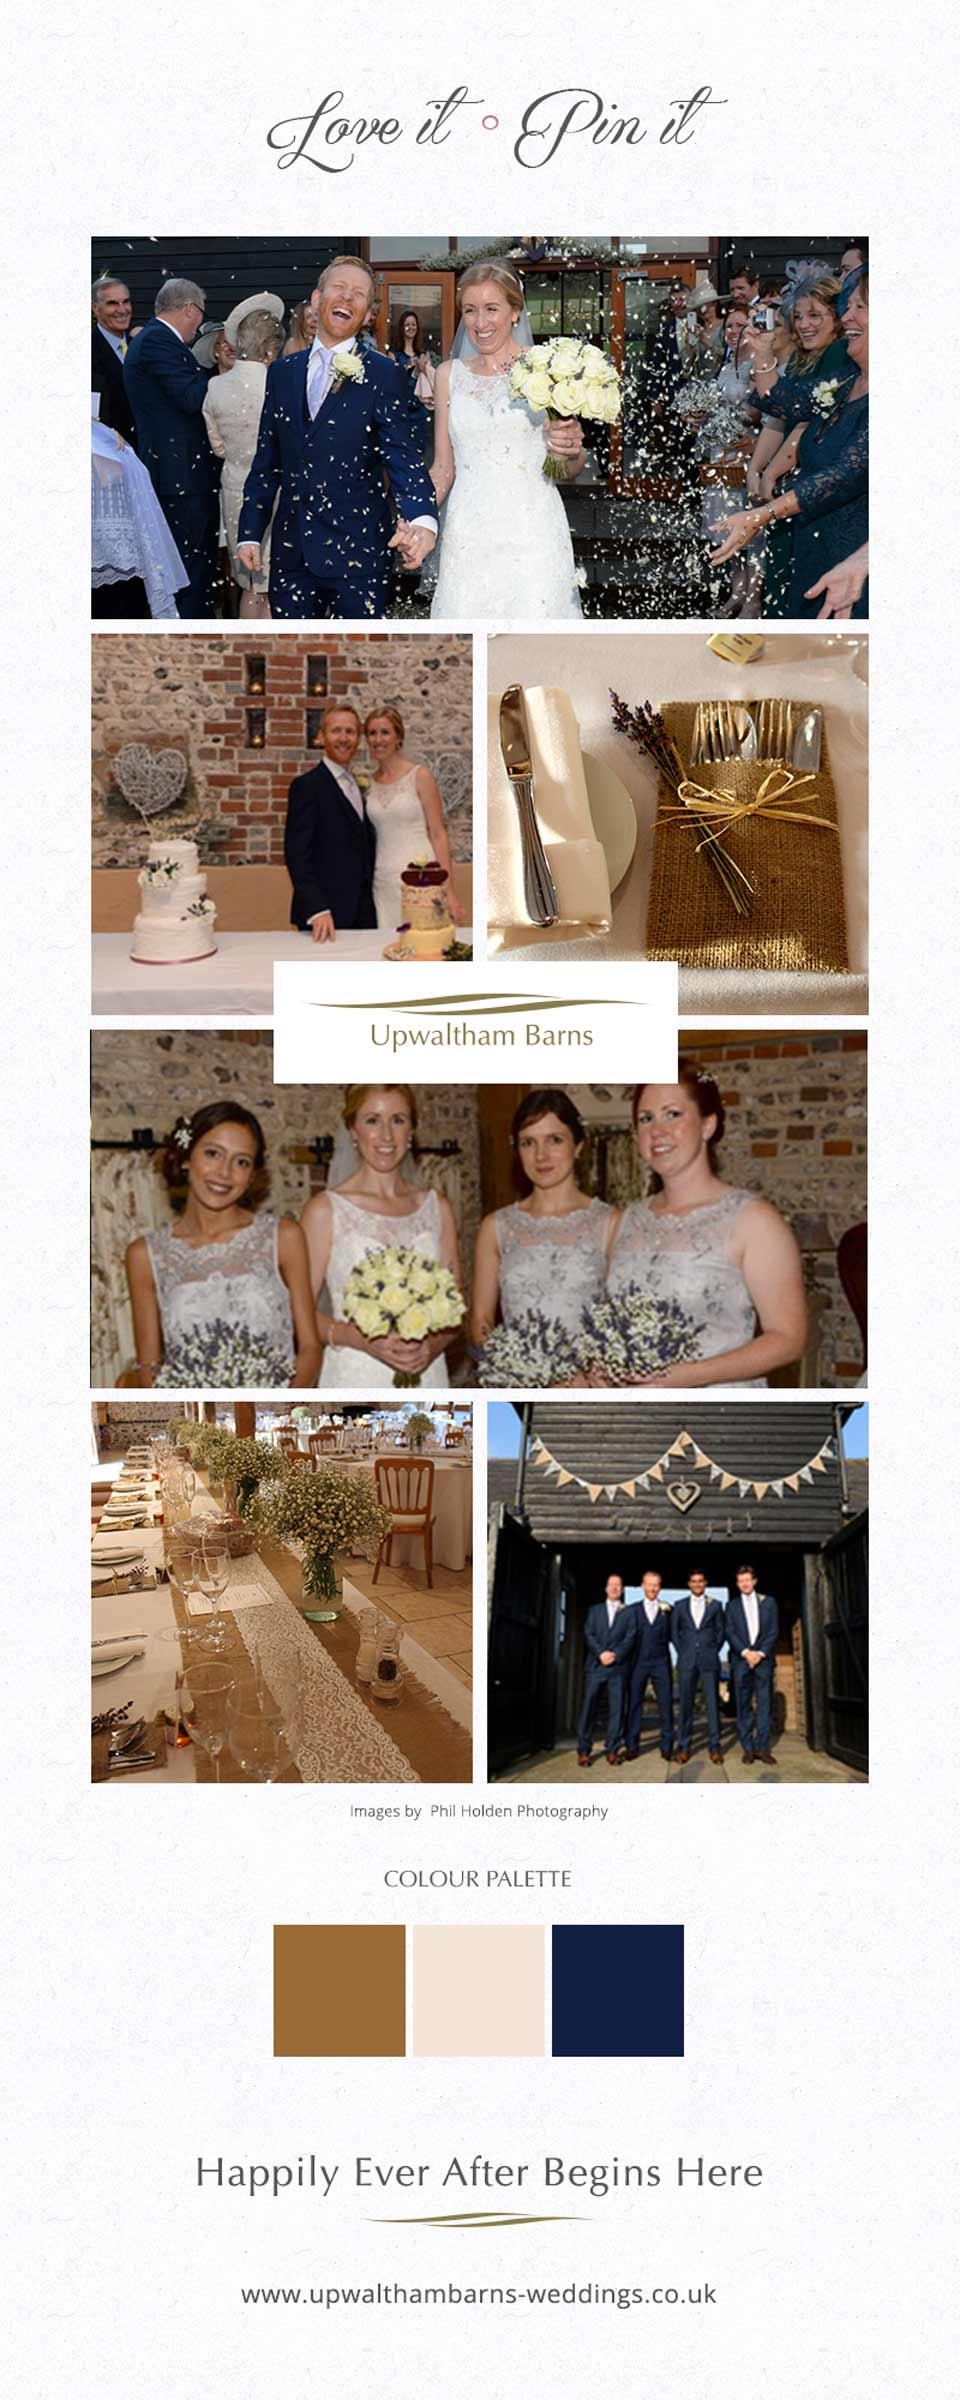 Jenny and Luke's real life wedding at Upwaltham Barns